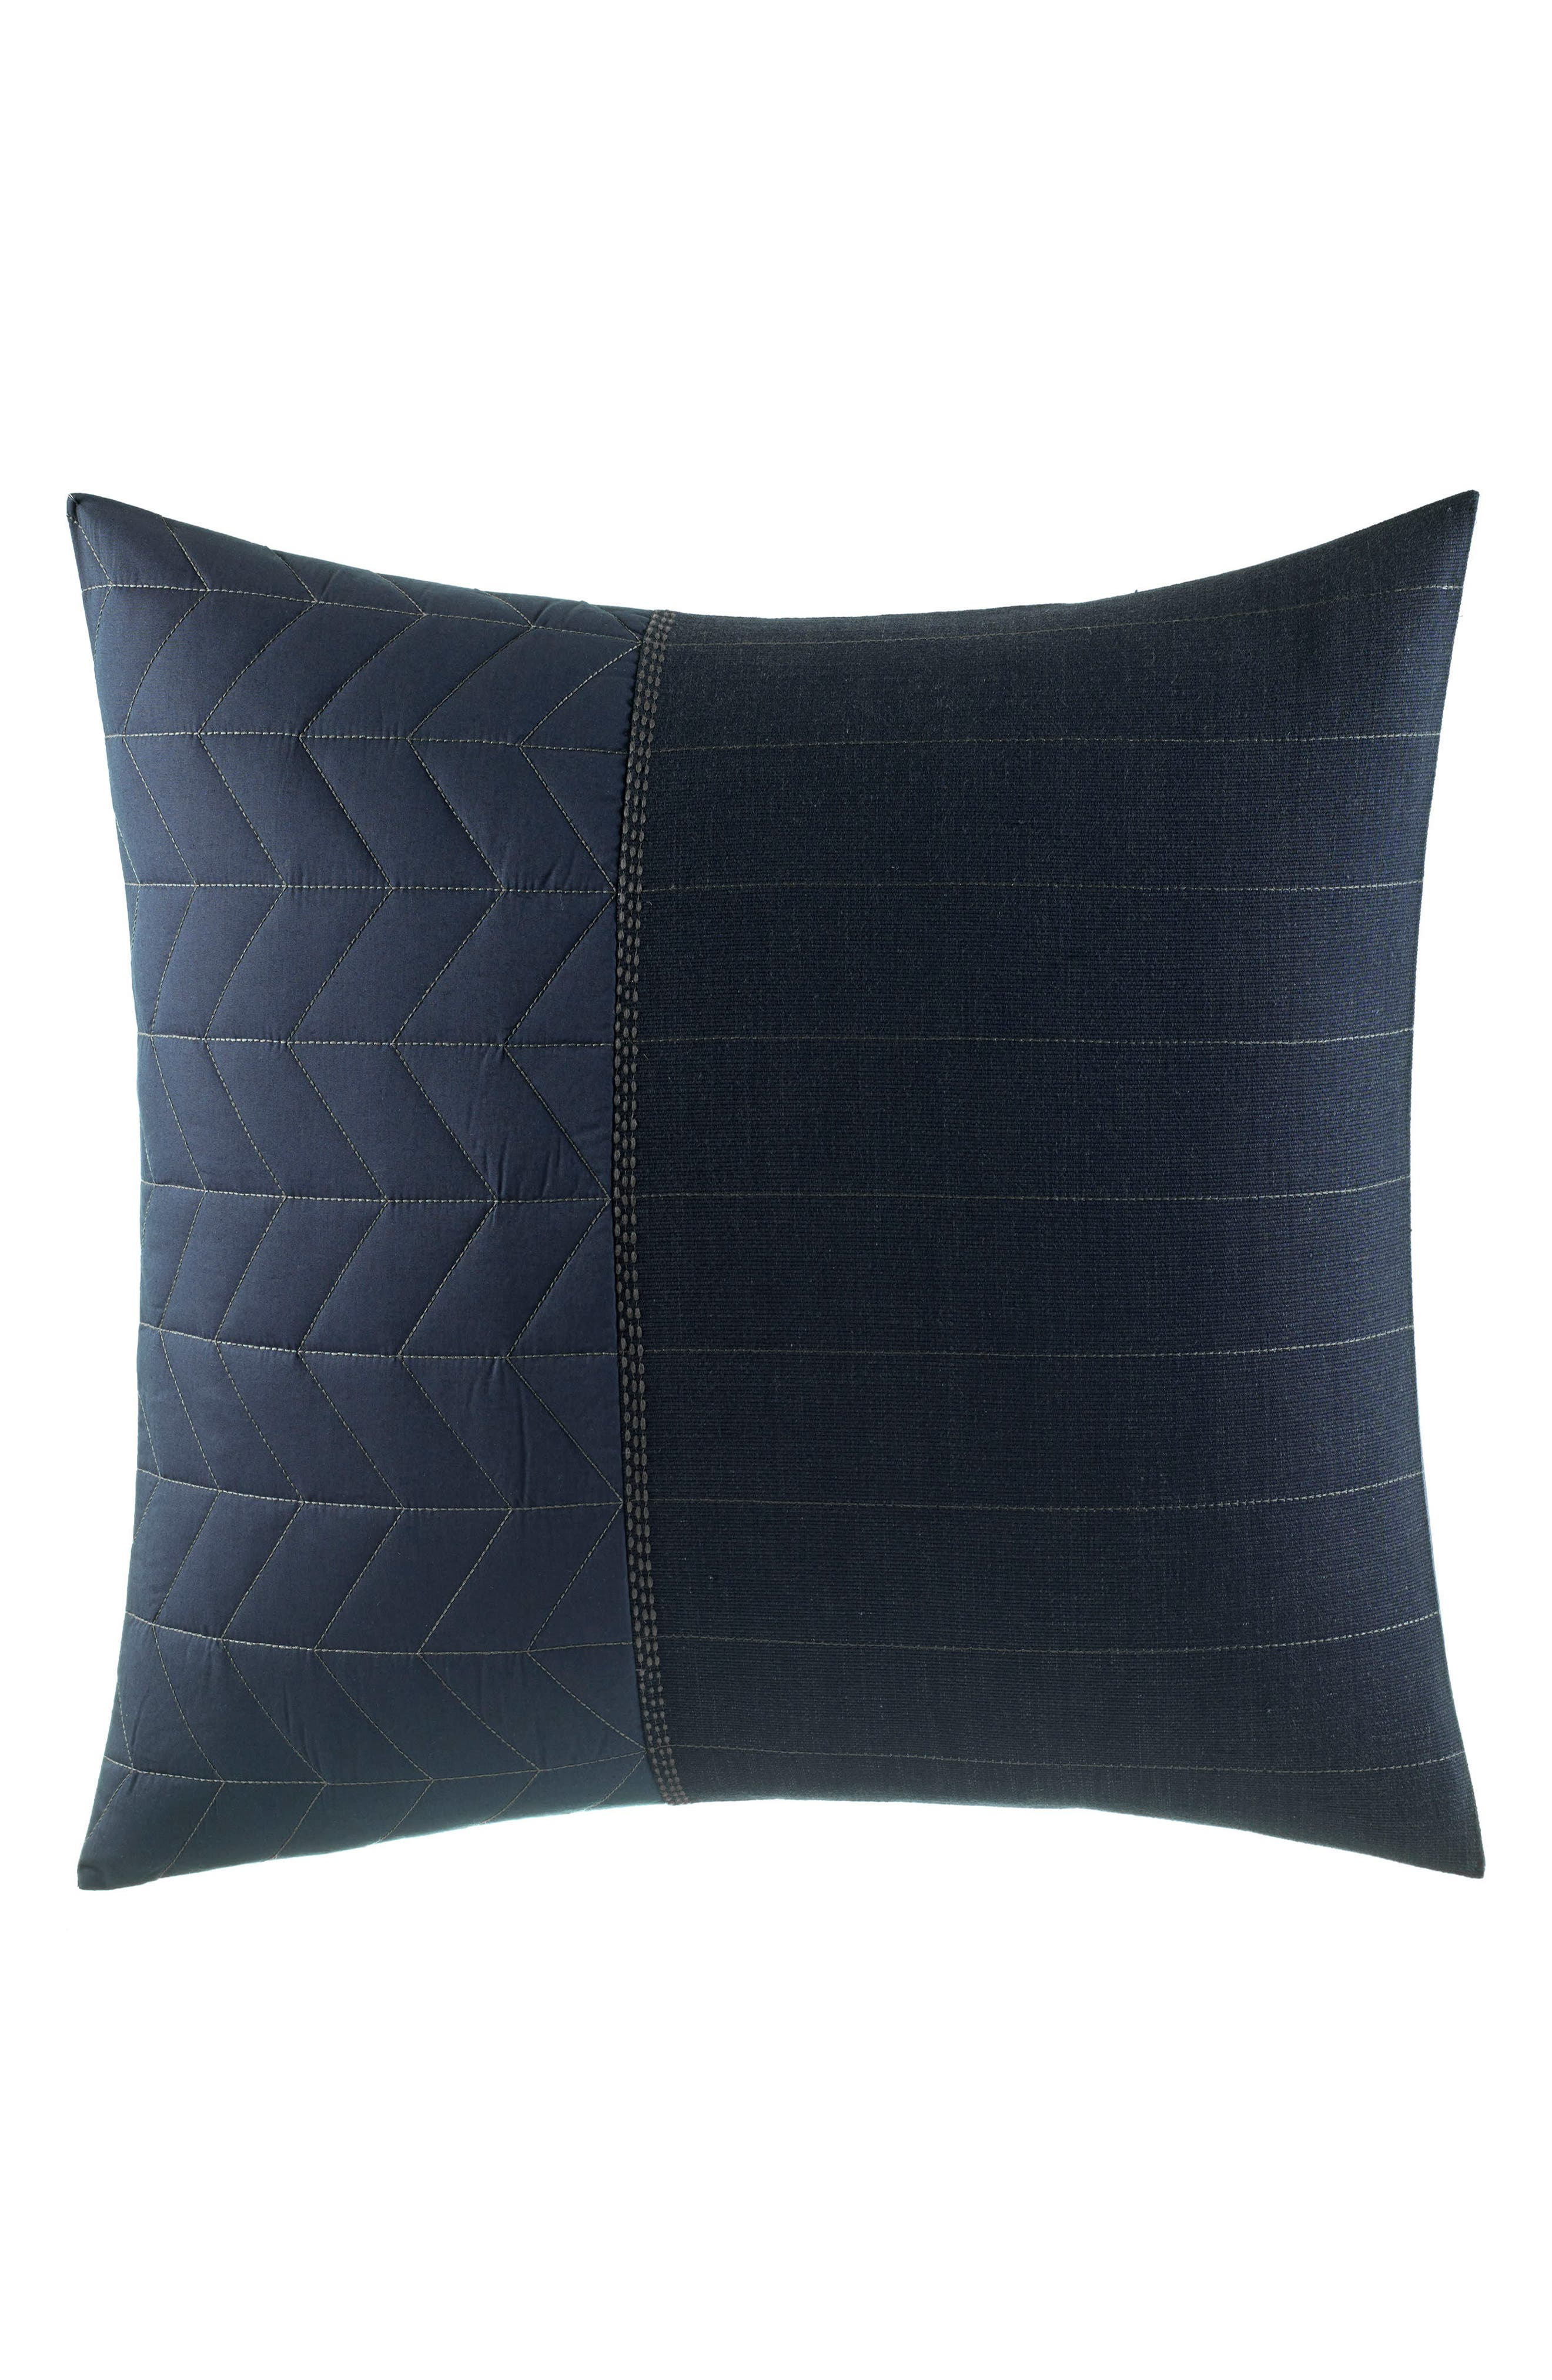 Quilted Euro Sham,                         Main,                         color, Navy